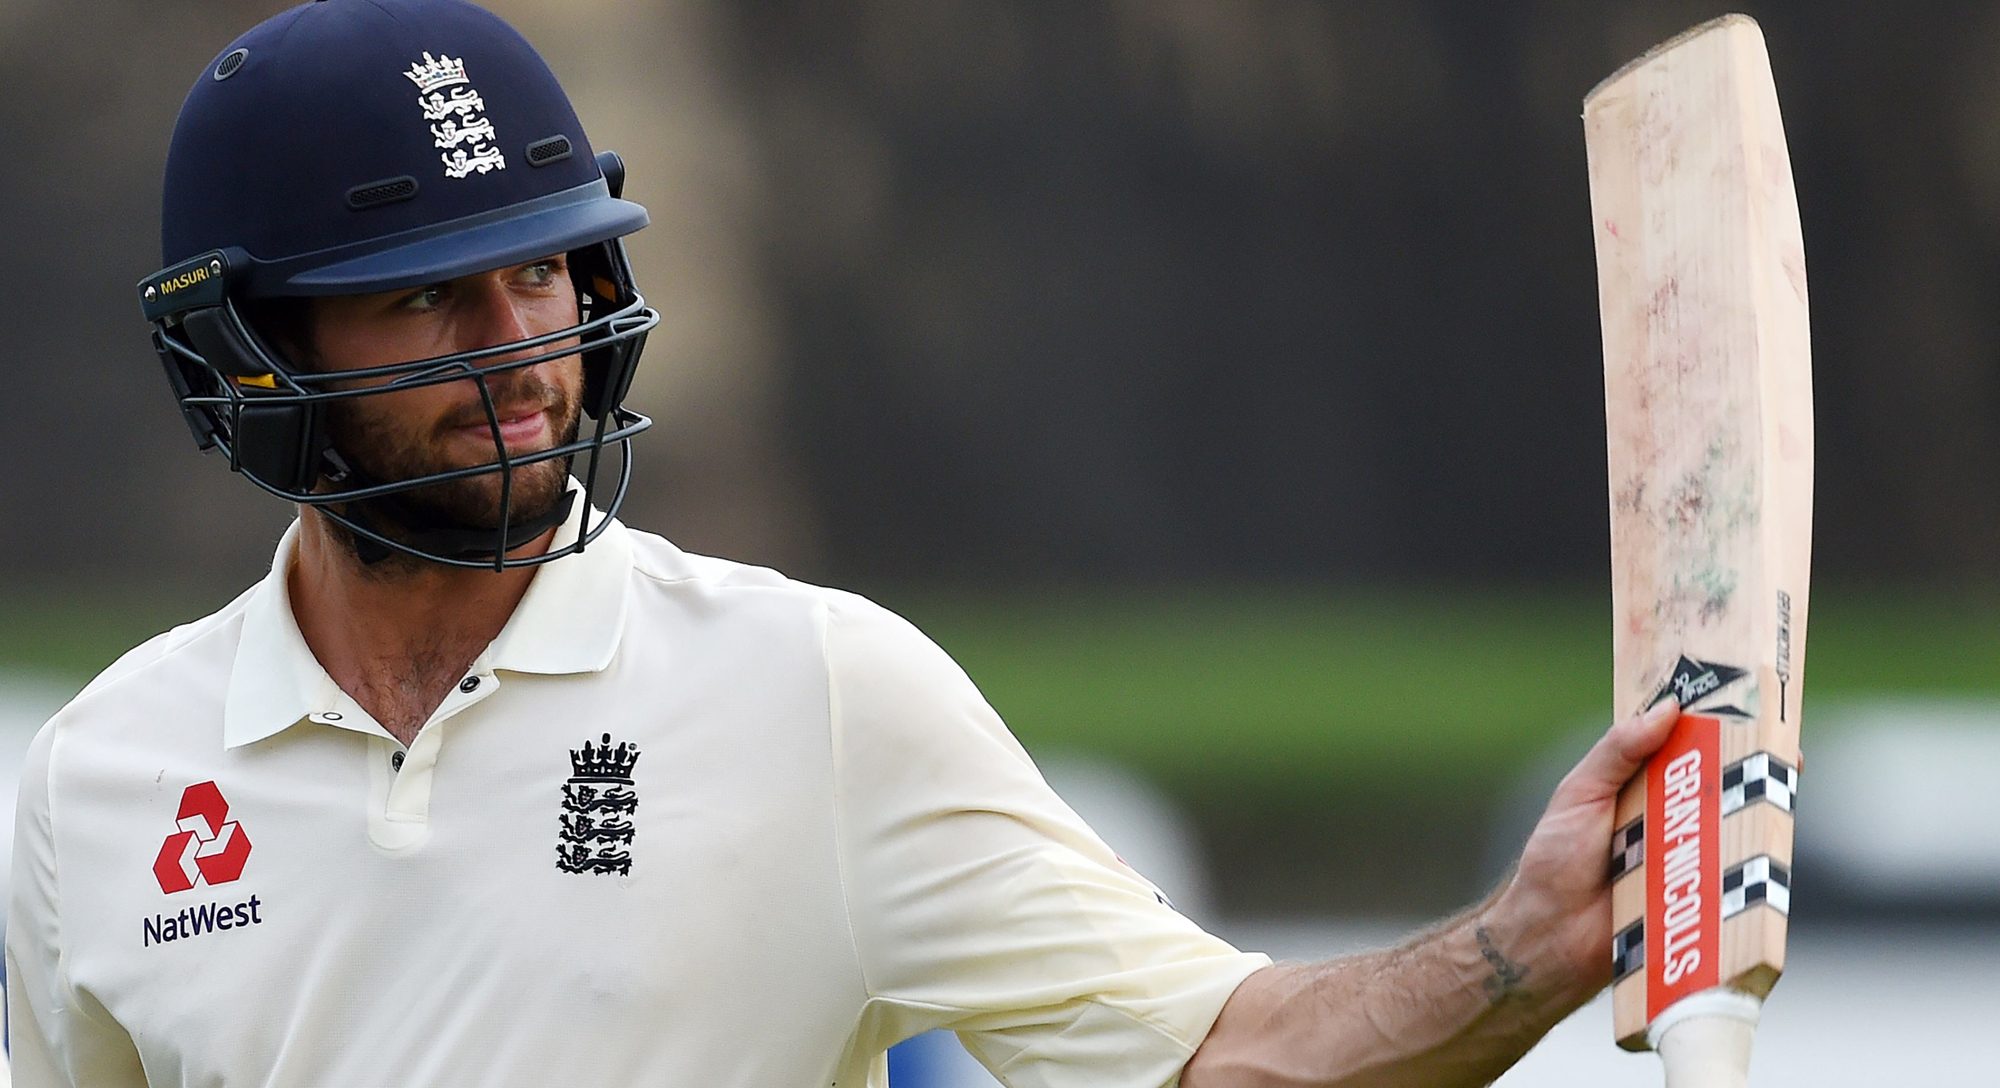 england 321 8 at stumps in first sri lanka test